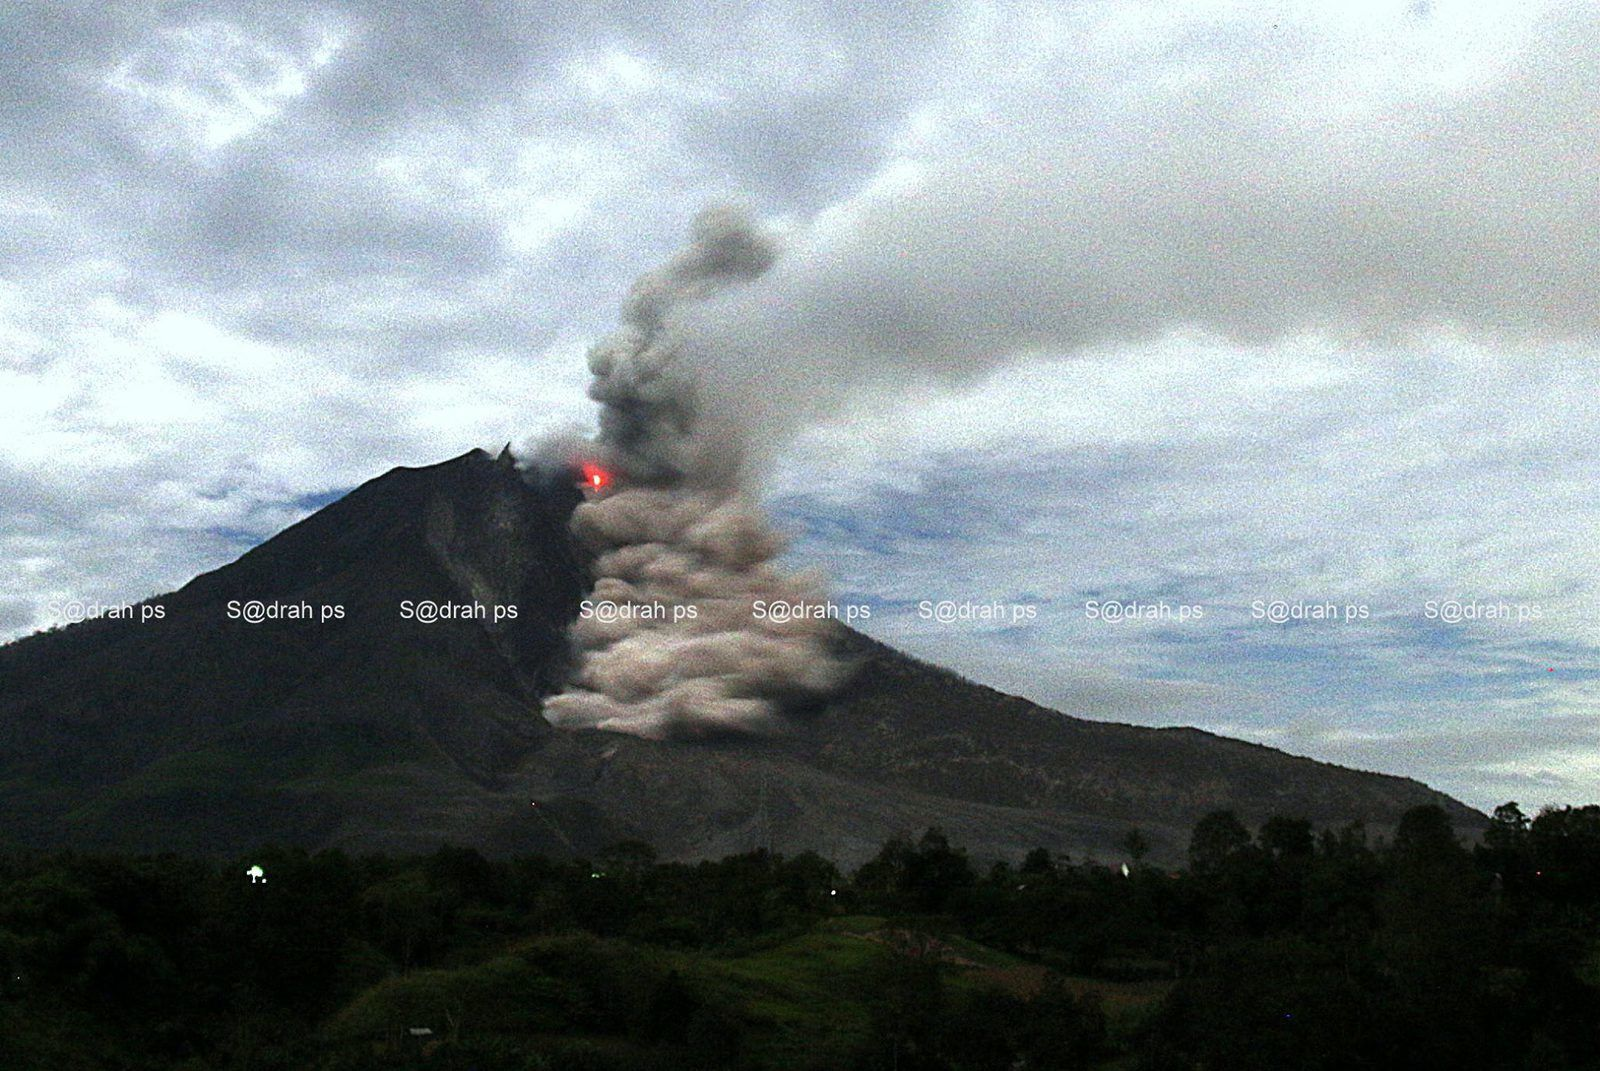 Sinabung - Coulée pyroclastique ce 25.08.2015 / 22h13 - photo S@drah ps